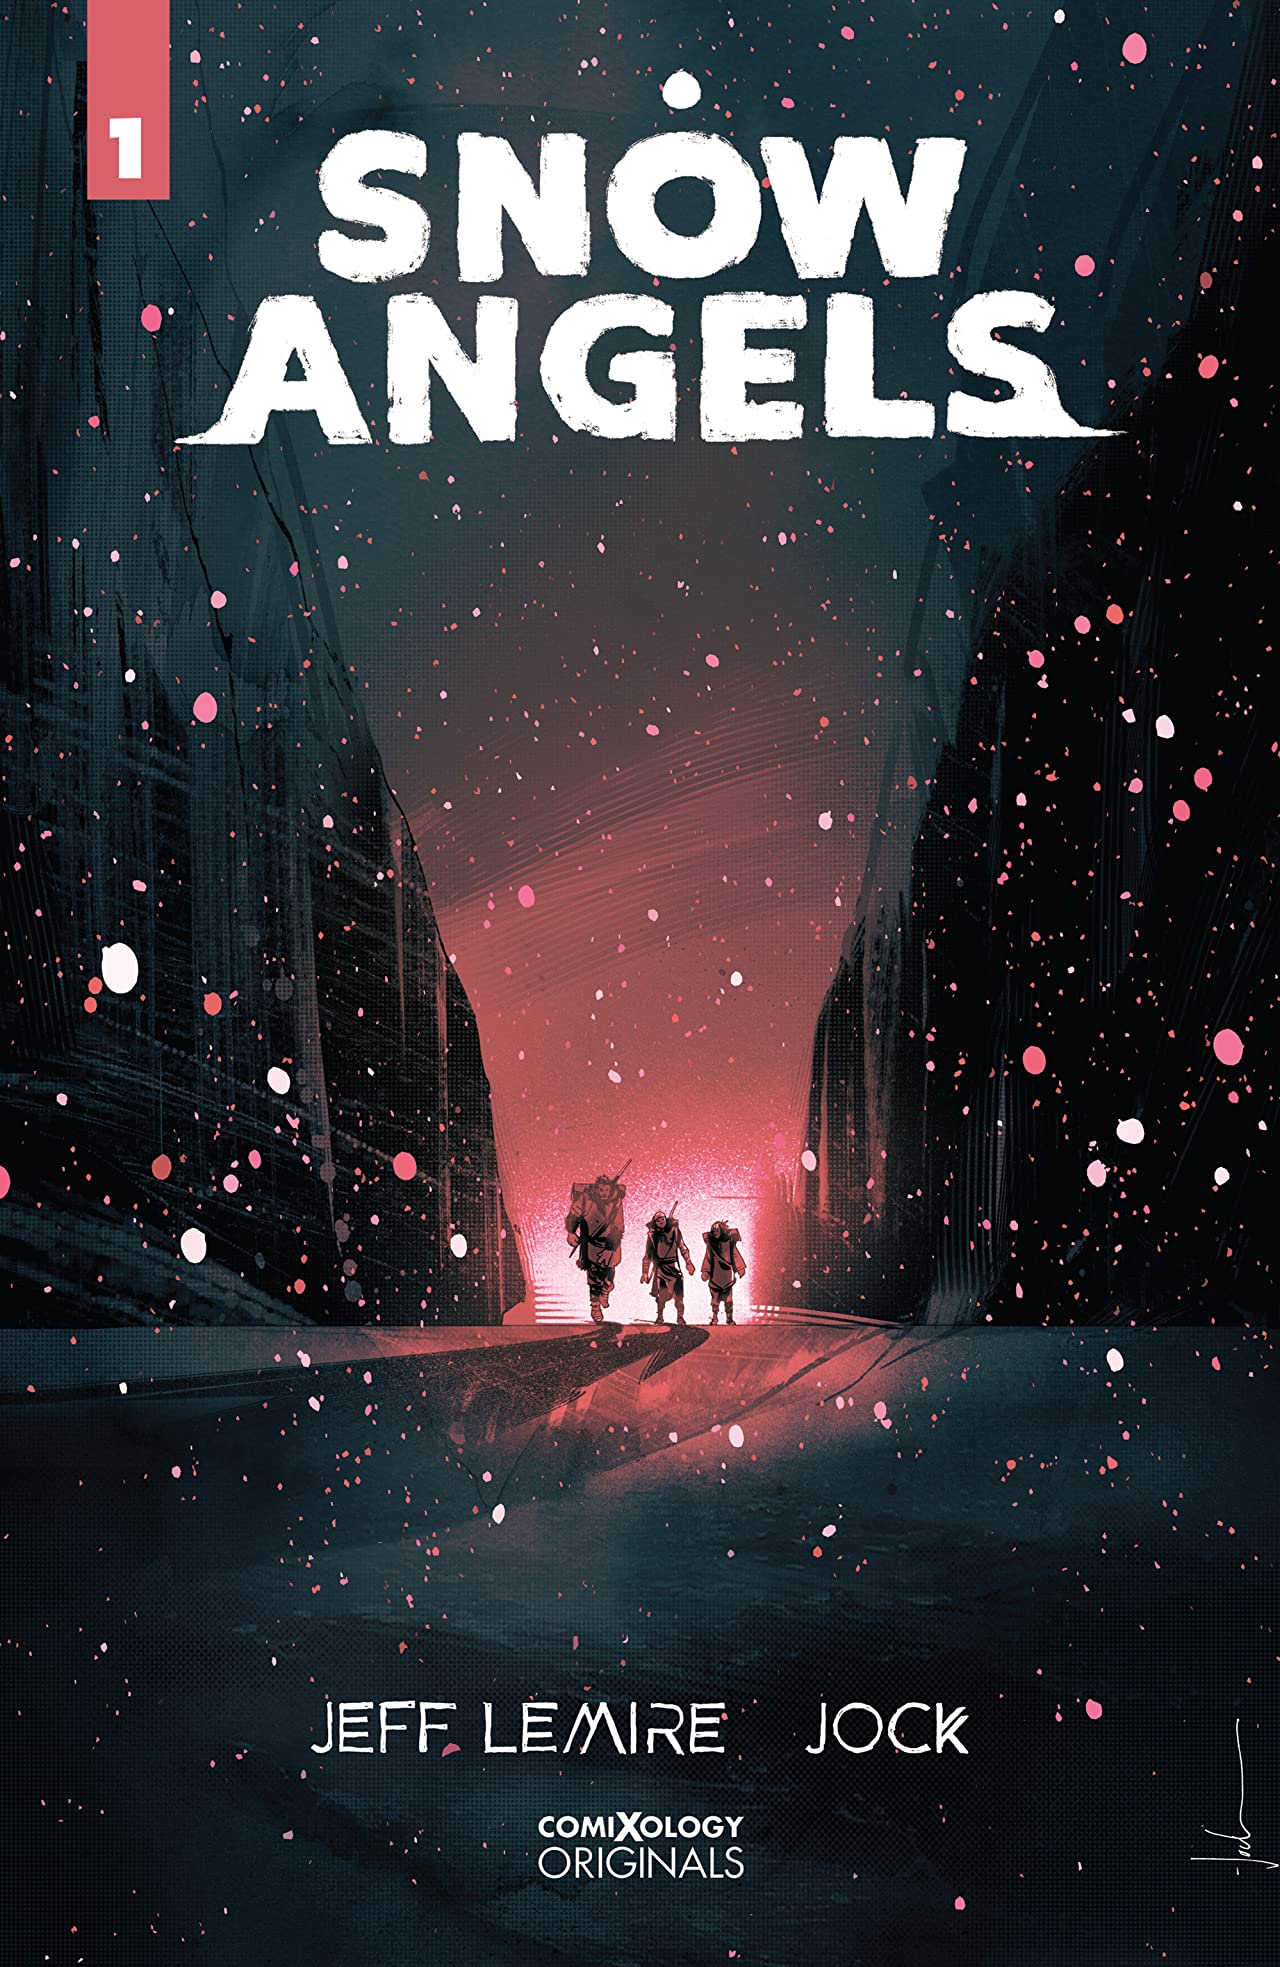 Snow Angels (comiXology Originals) #1